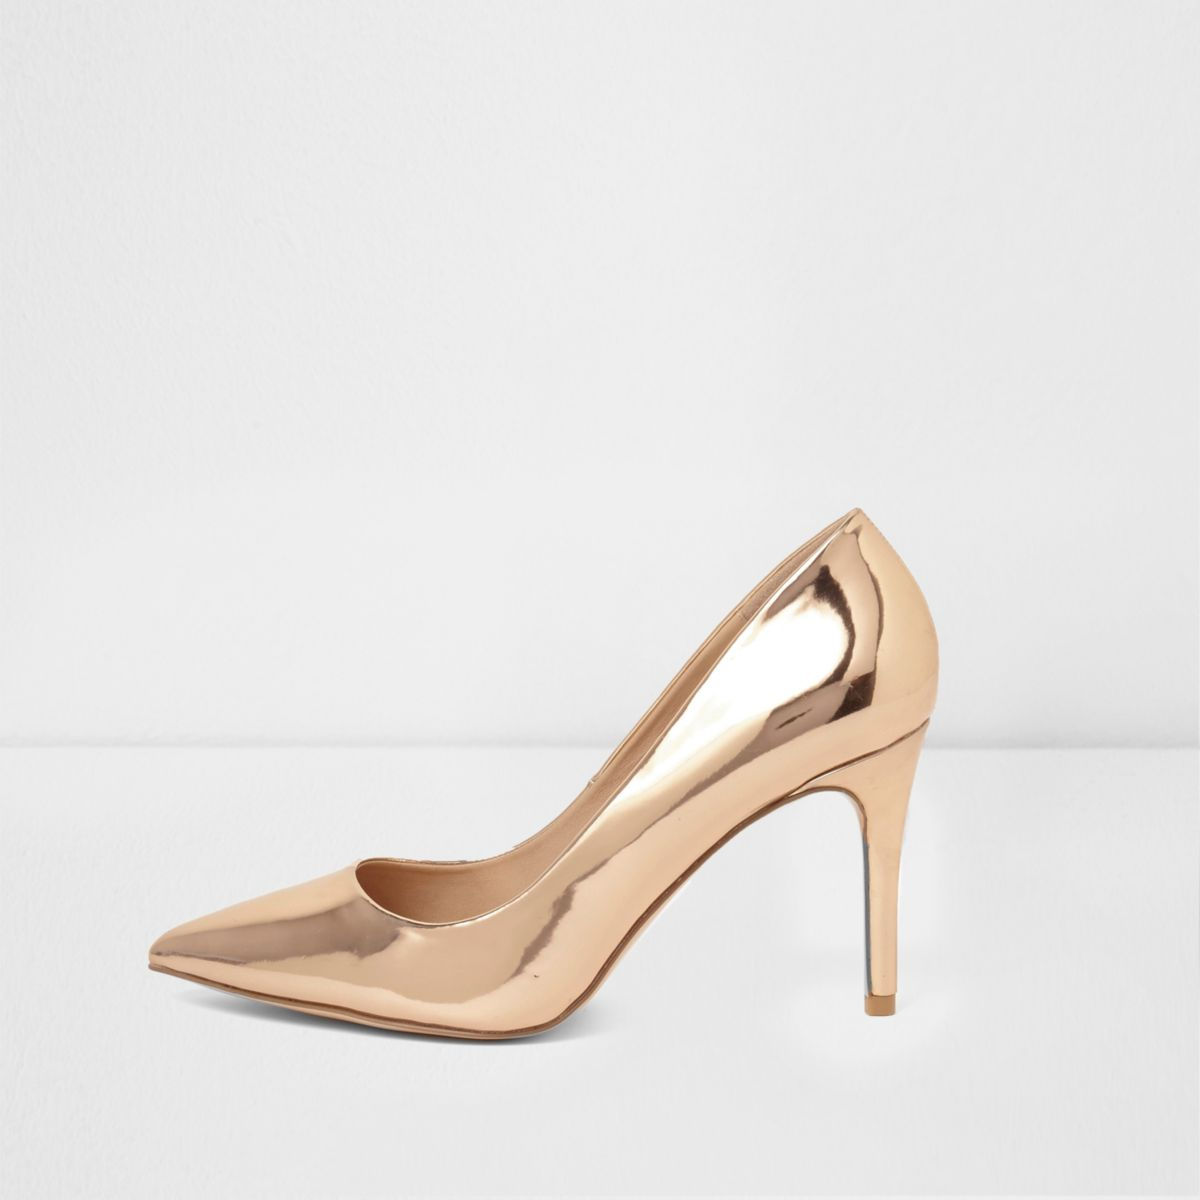 Rose gold metallic mid heel pumps